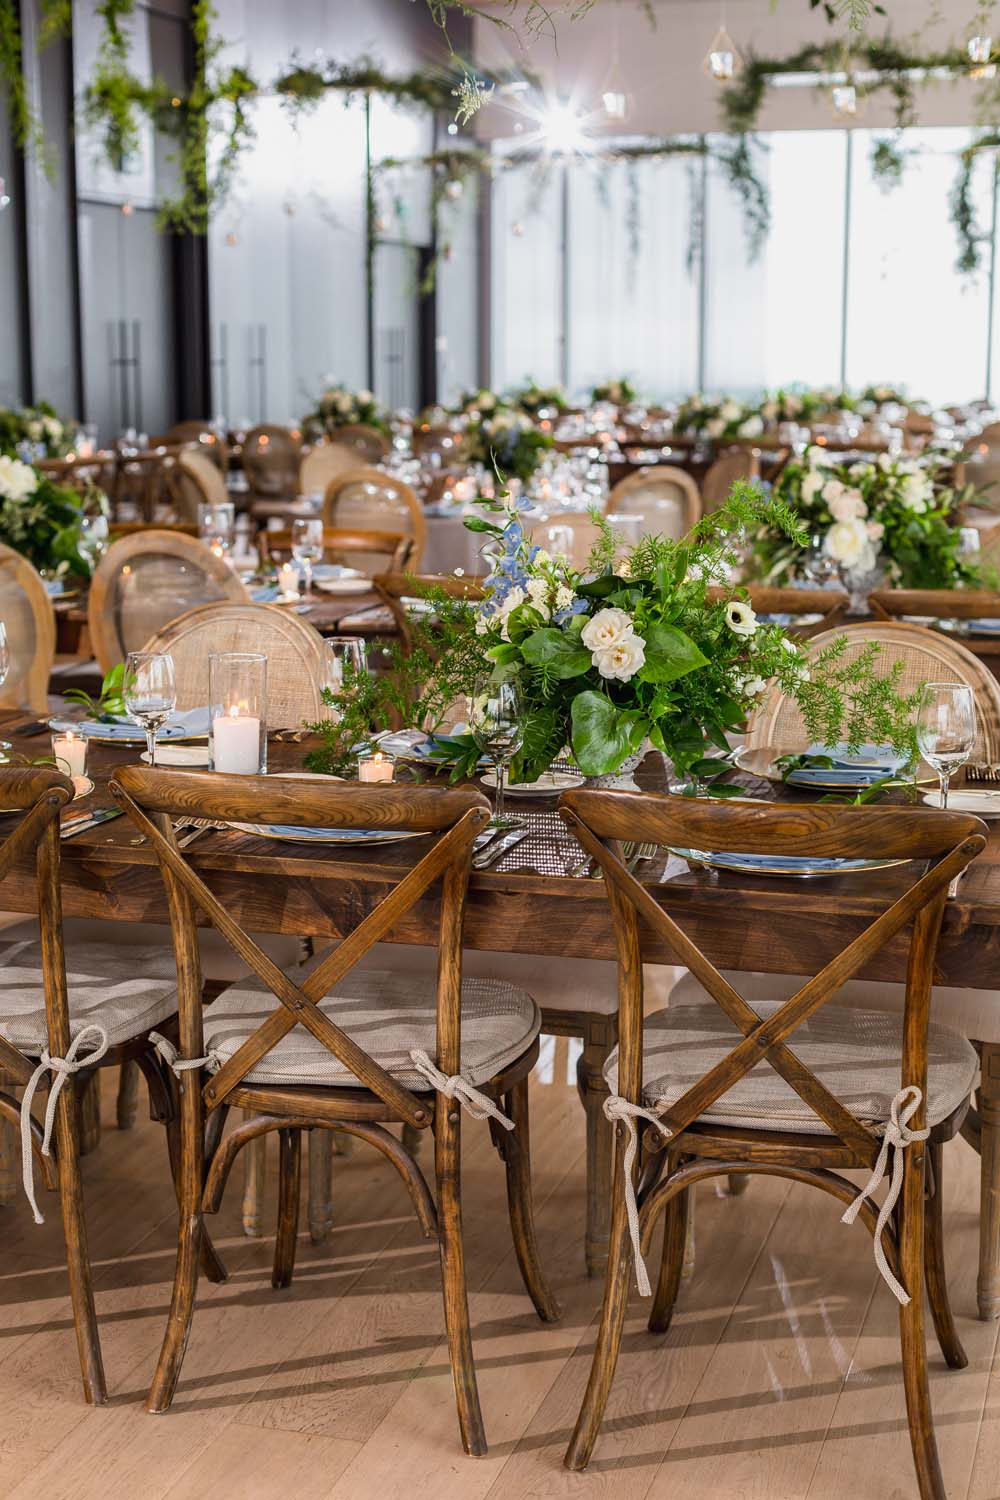 This Toronto Wedding Brings Nature to the City - Chairs